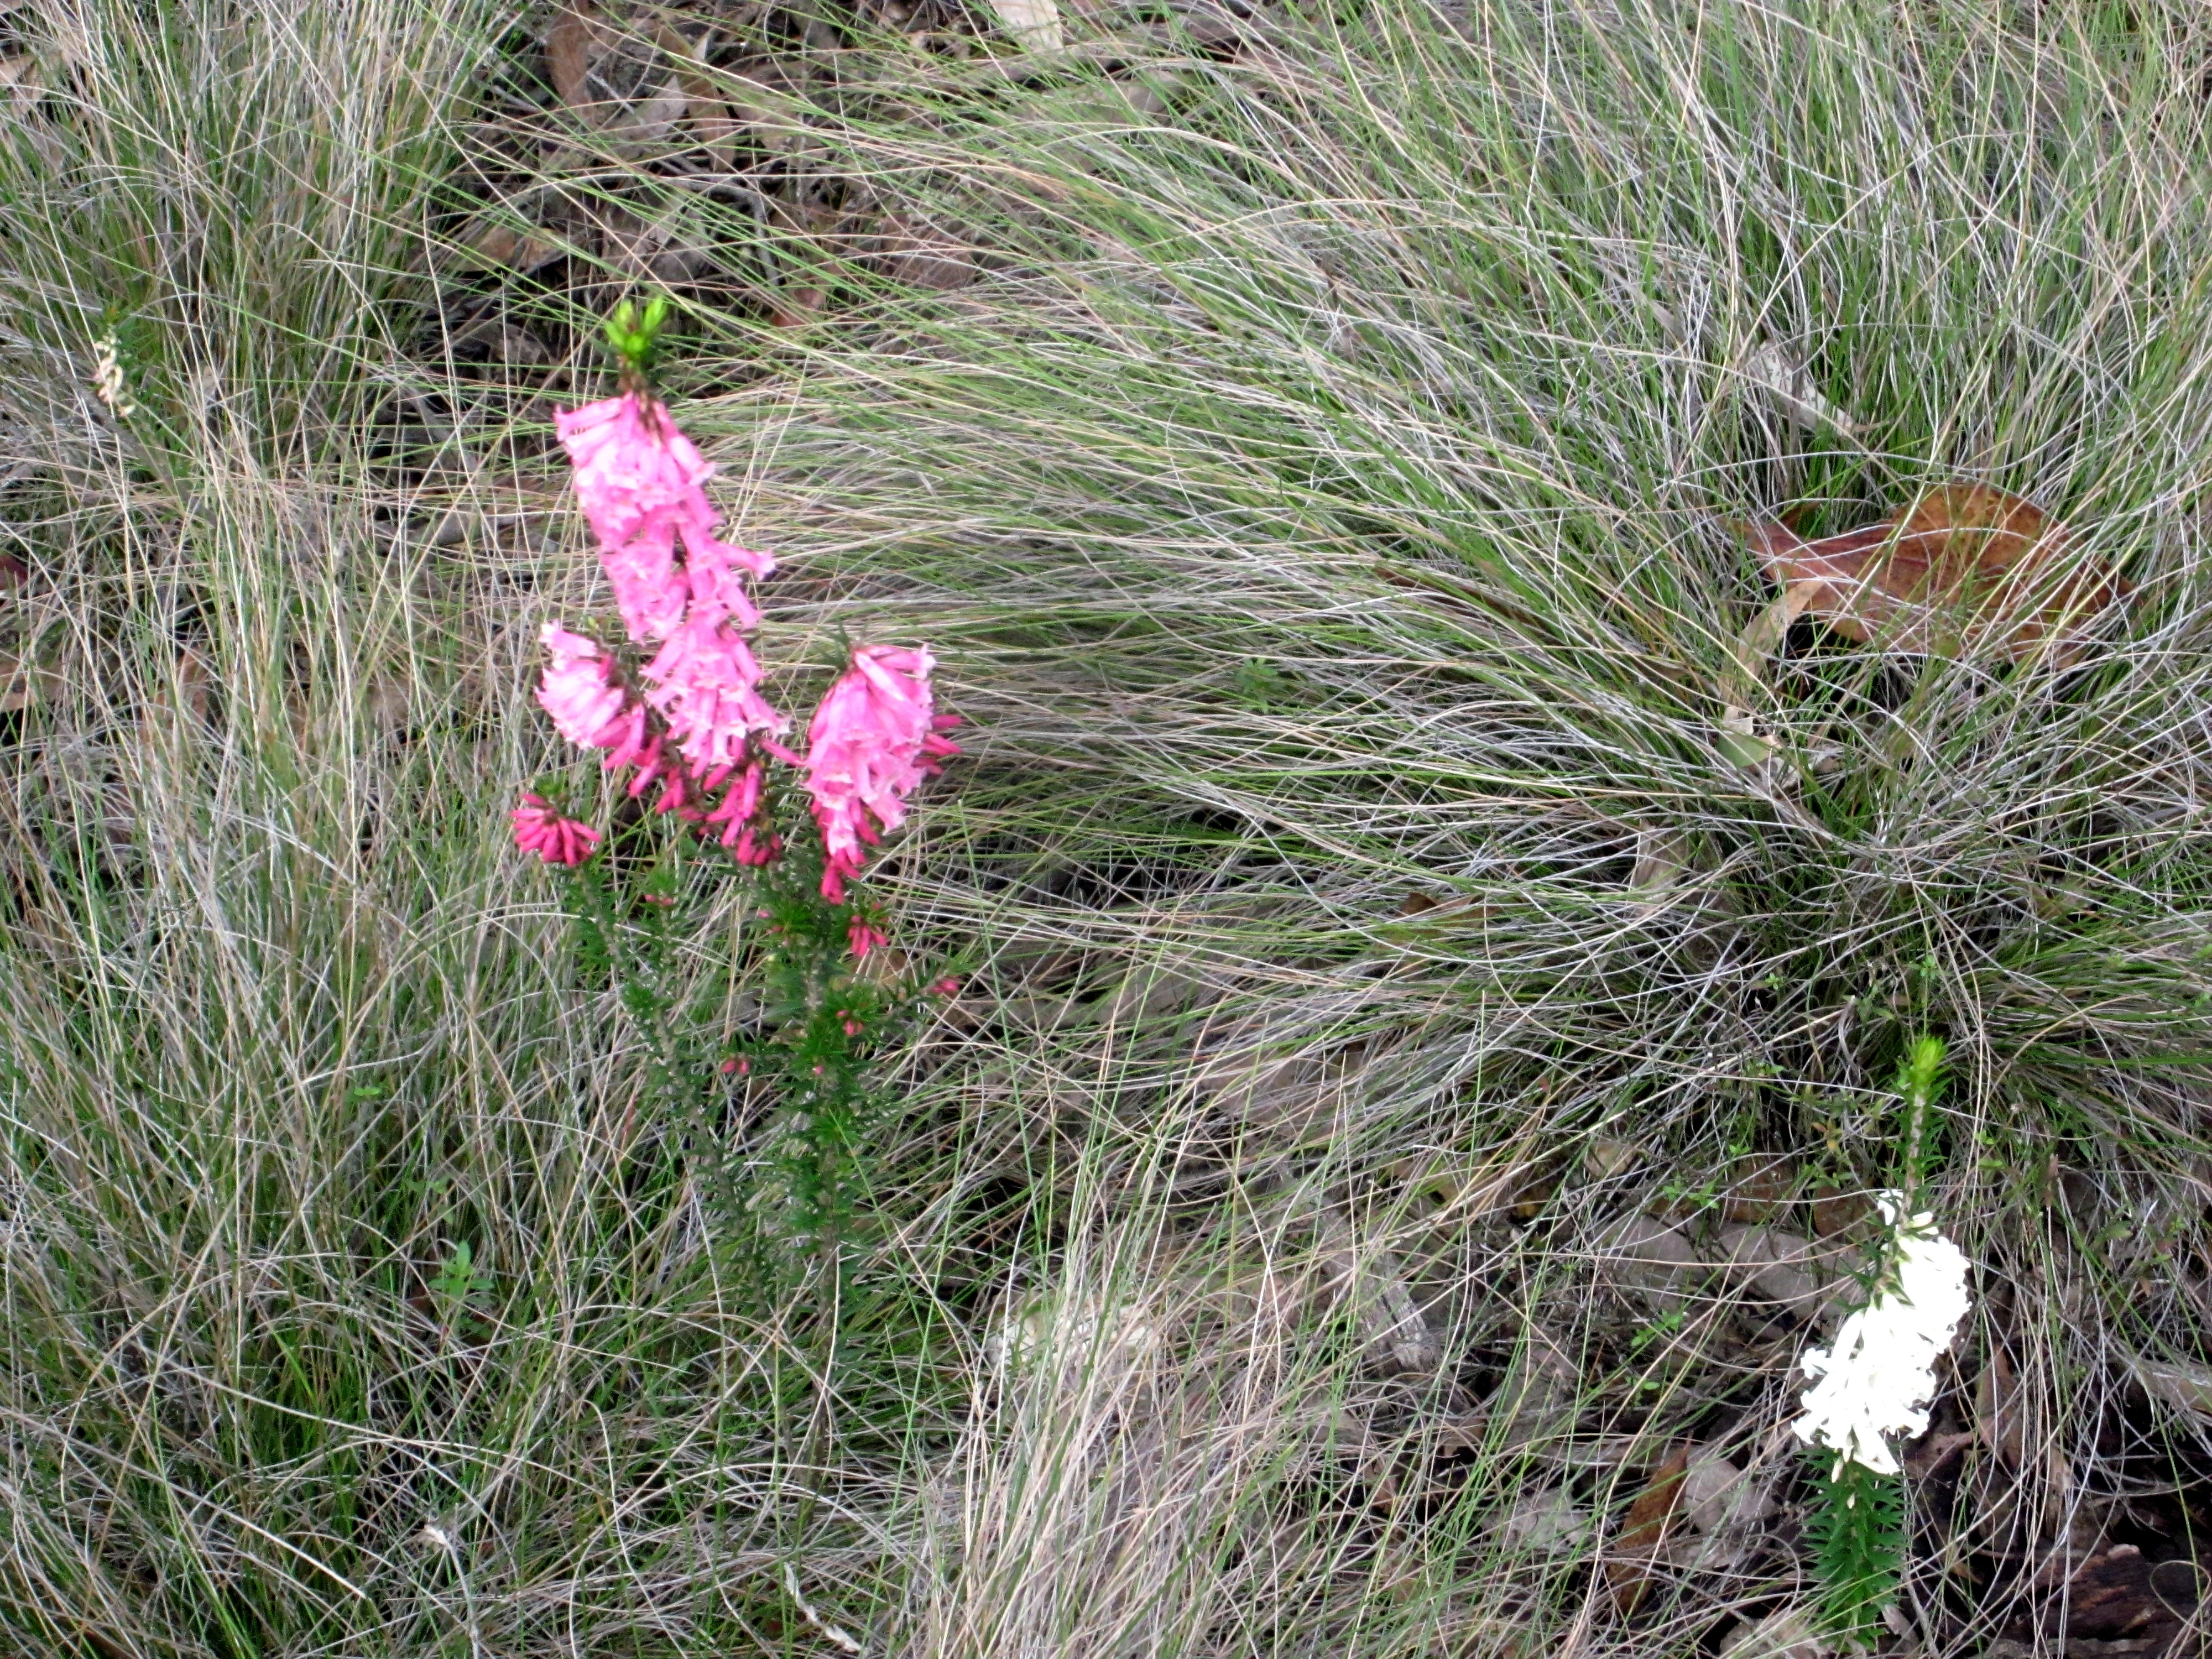 This should be Epacris-impressa-8.jpeg.  Is it missing?